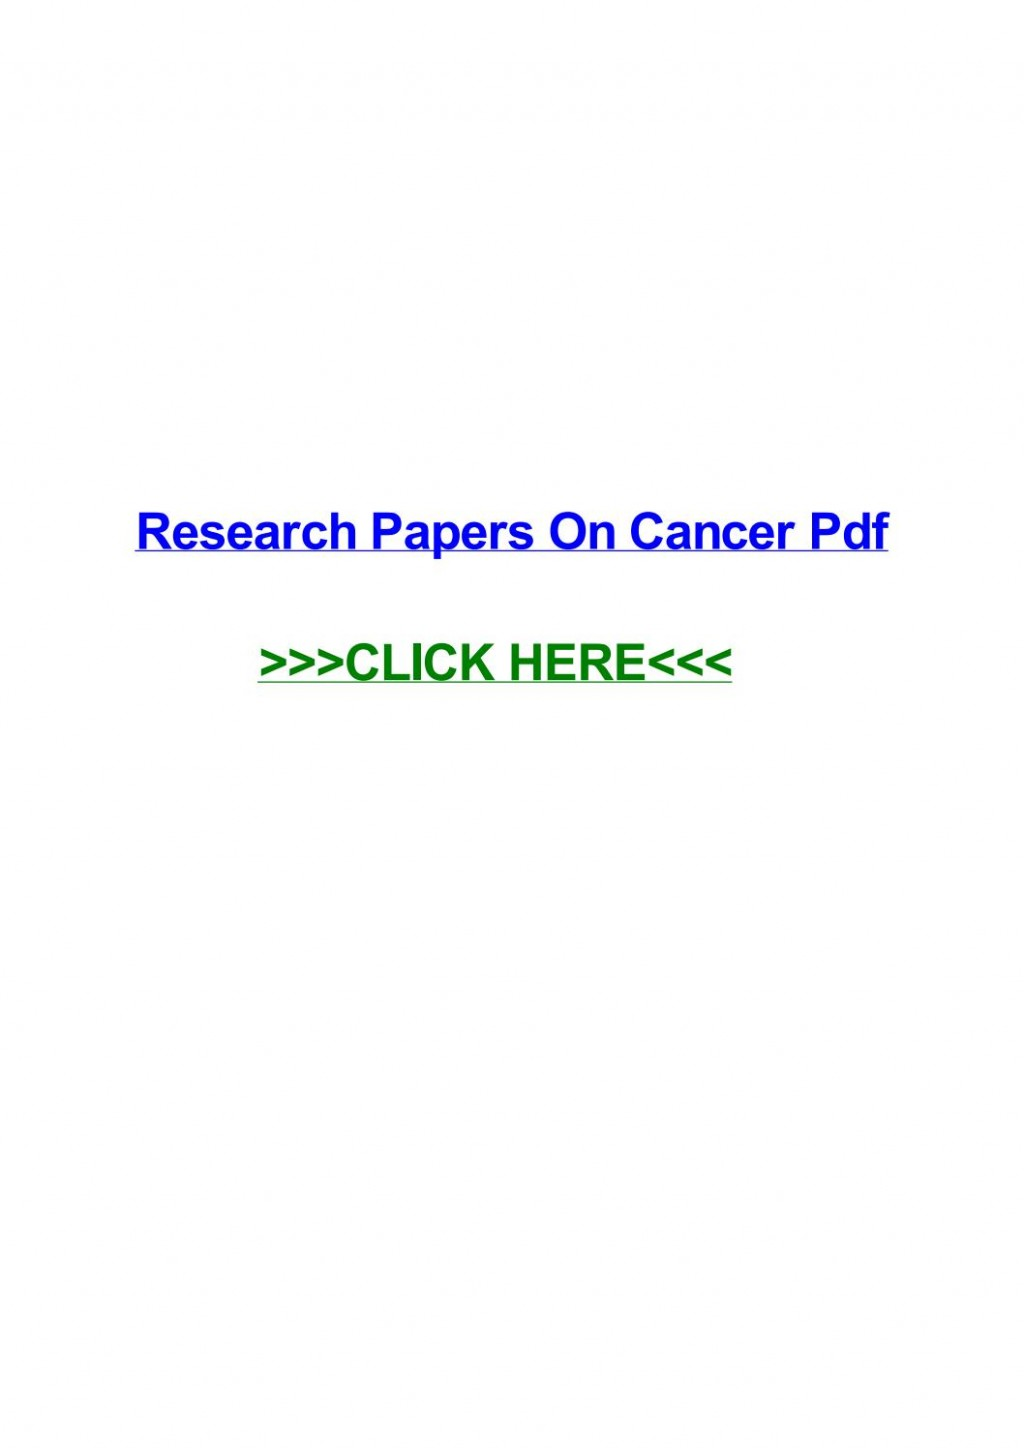 010 Research Paper Page 1 Cancer Papers Fascinating Pdf Lung Colon Skin Large